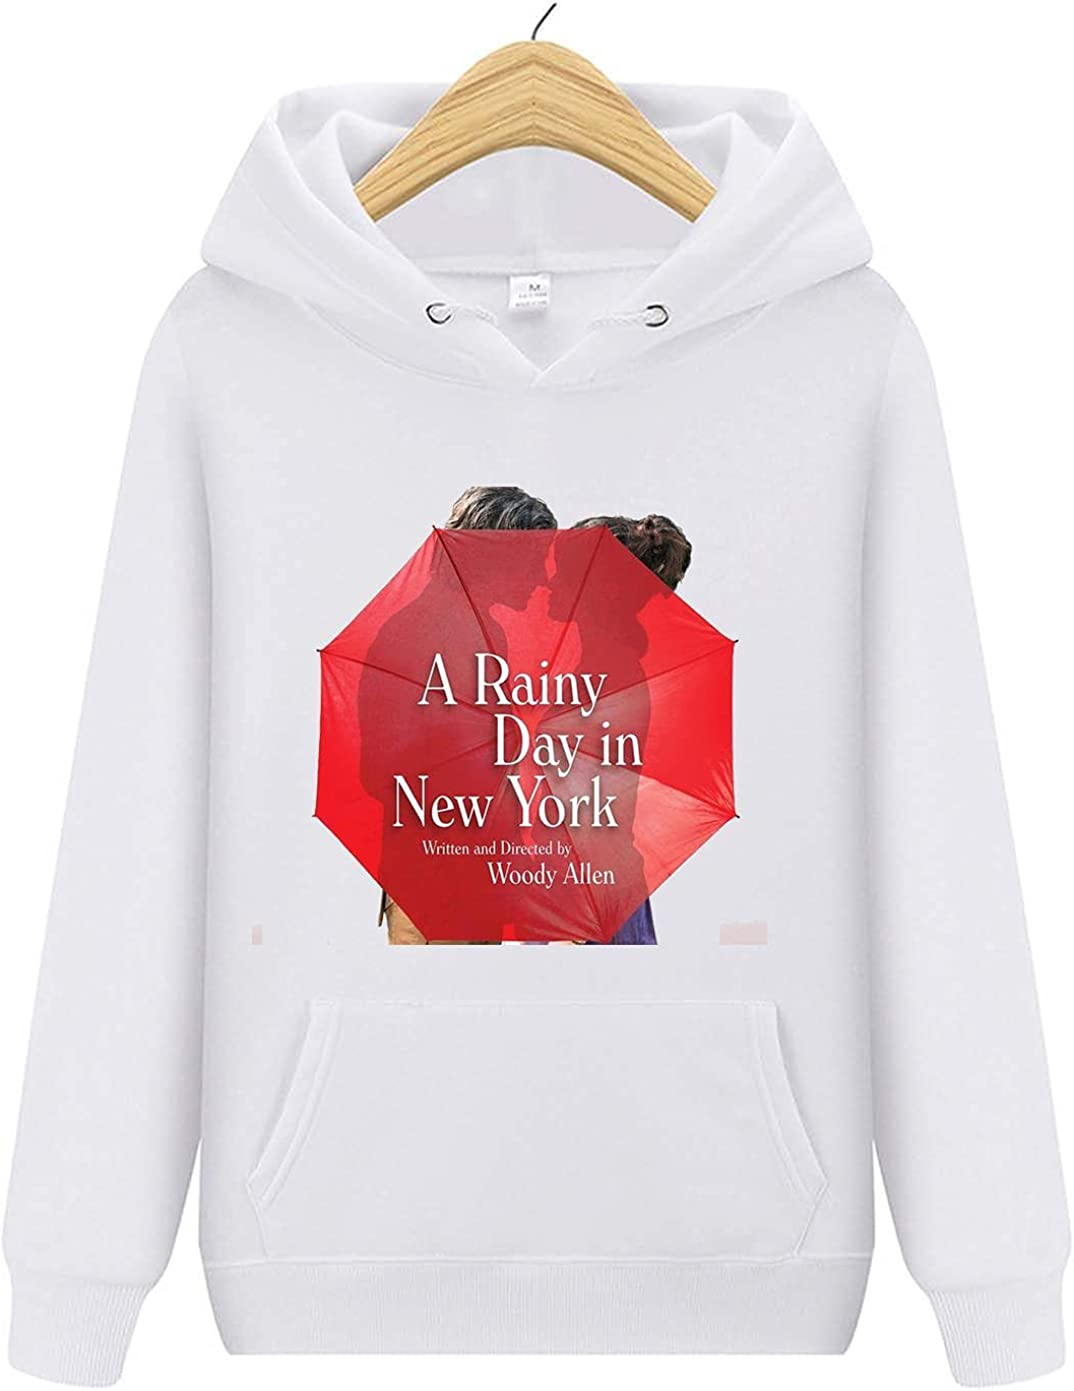 A Rainy Day in New Max 82% OFF Mail order York Printing Adult Hoodie Sweater Classical